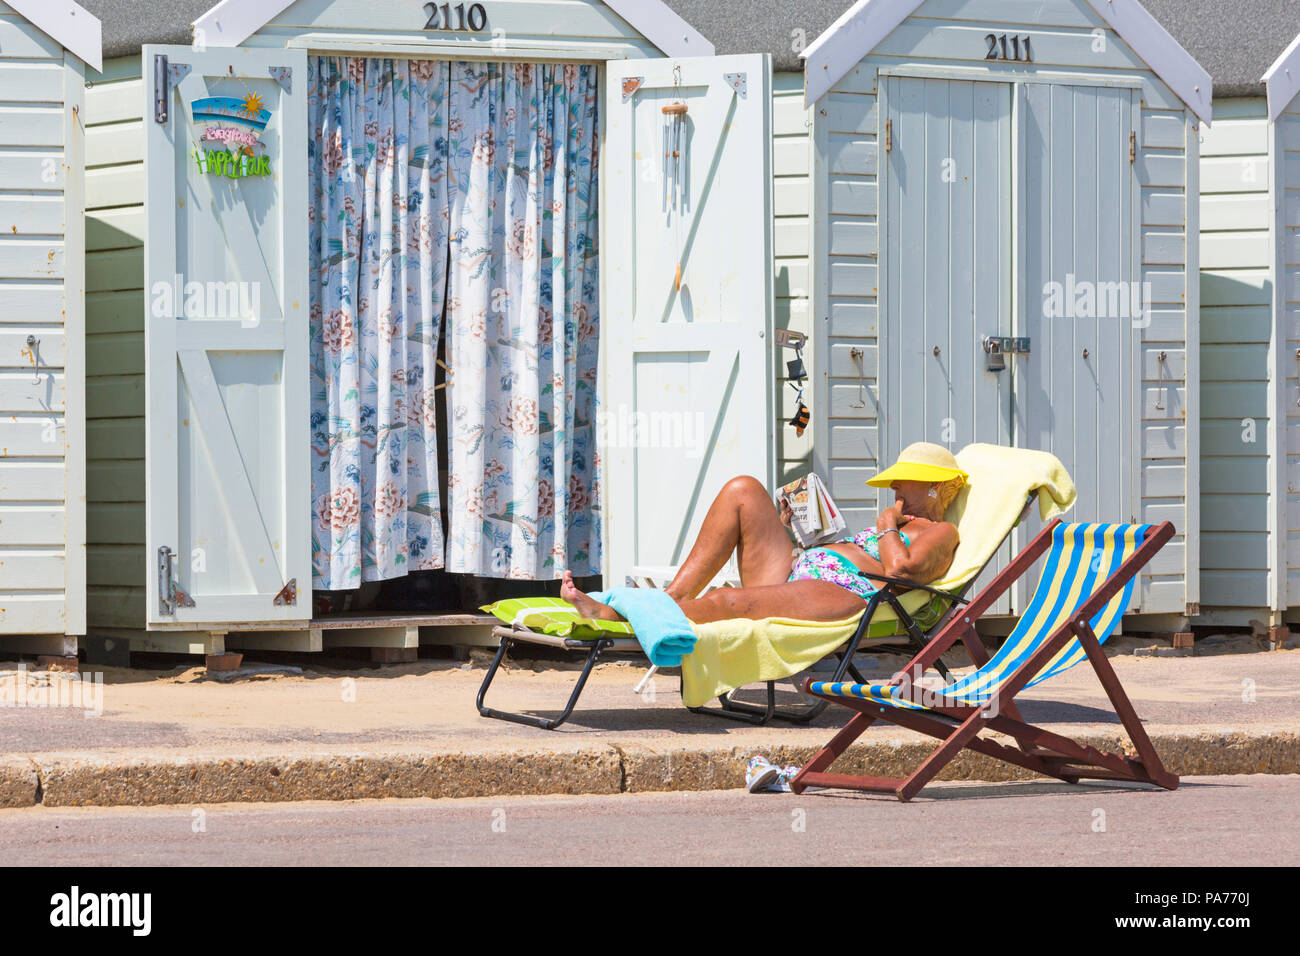 Bournemouth, Dorset, UK. 21st July 2018. UK weather: hot and sunny at Bournemouth beaches, as sunseekers head to the seaside to soak up the sun at the start of the summer holidays. Senior woman sunbathing reading newspaper on sunlounger outside beach huts. Credit: Carolyn Jenkins/Alamy Live News - Stock Image